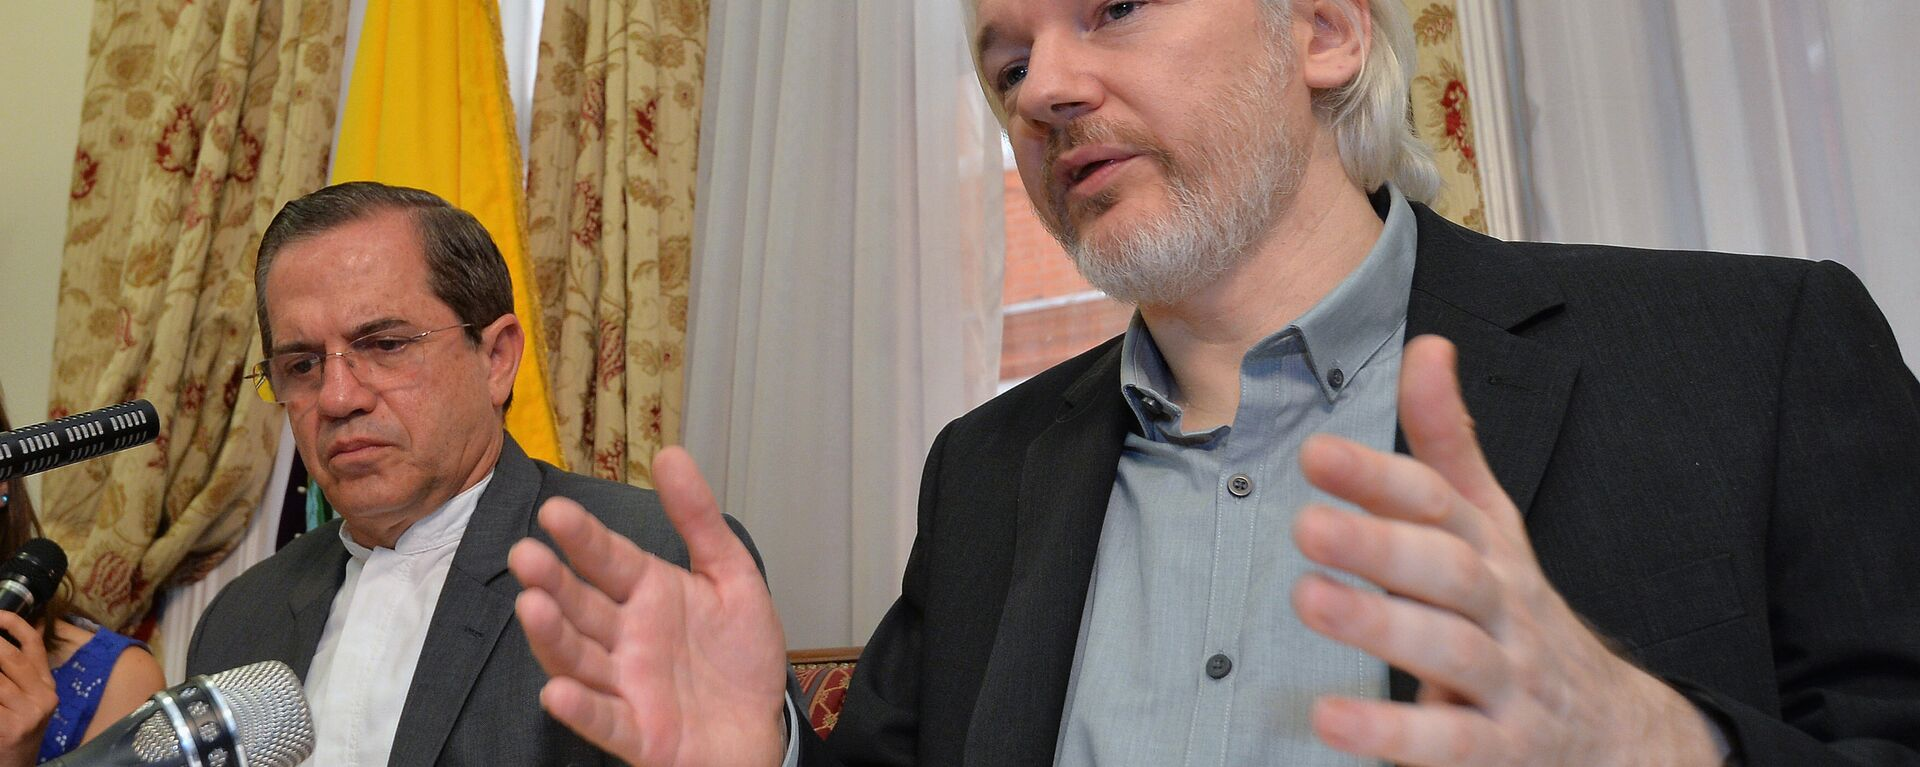 FILE - In this Aug. 18, 2014, file photo, Ecuador's Foreign Minister Ricardo Patino, left, and WikiLeaks founder Julian Assange speak during a news conference inside the Ecuadorian Embassy in London. WikiLeaks founder Julian Assange has failed in a bid to win asylum in France. - Sputnik Mundo, 1920, 02.07.2021